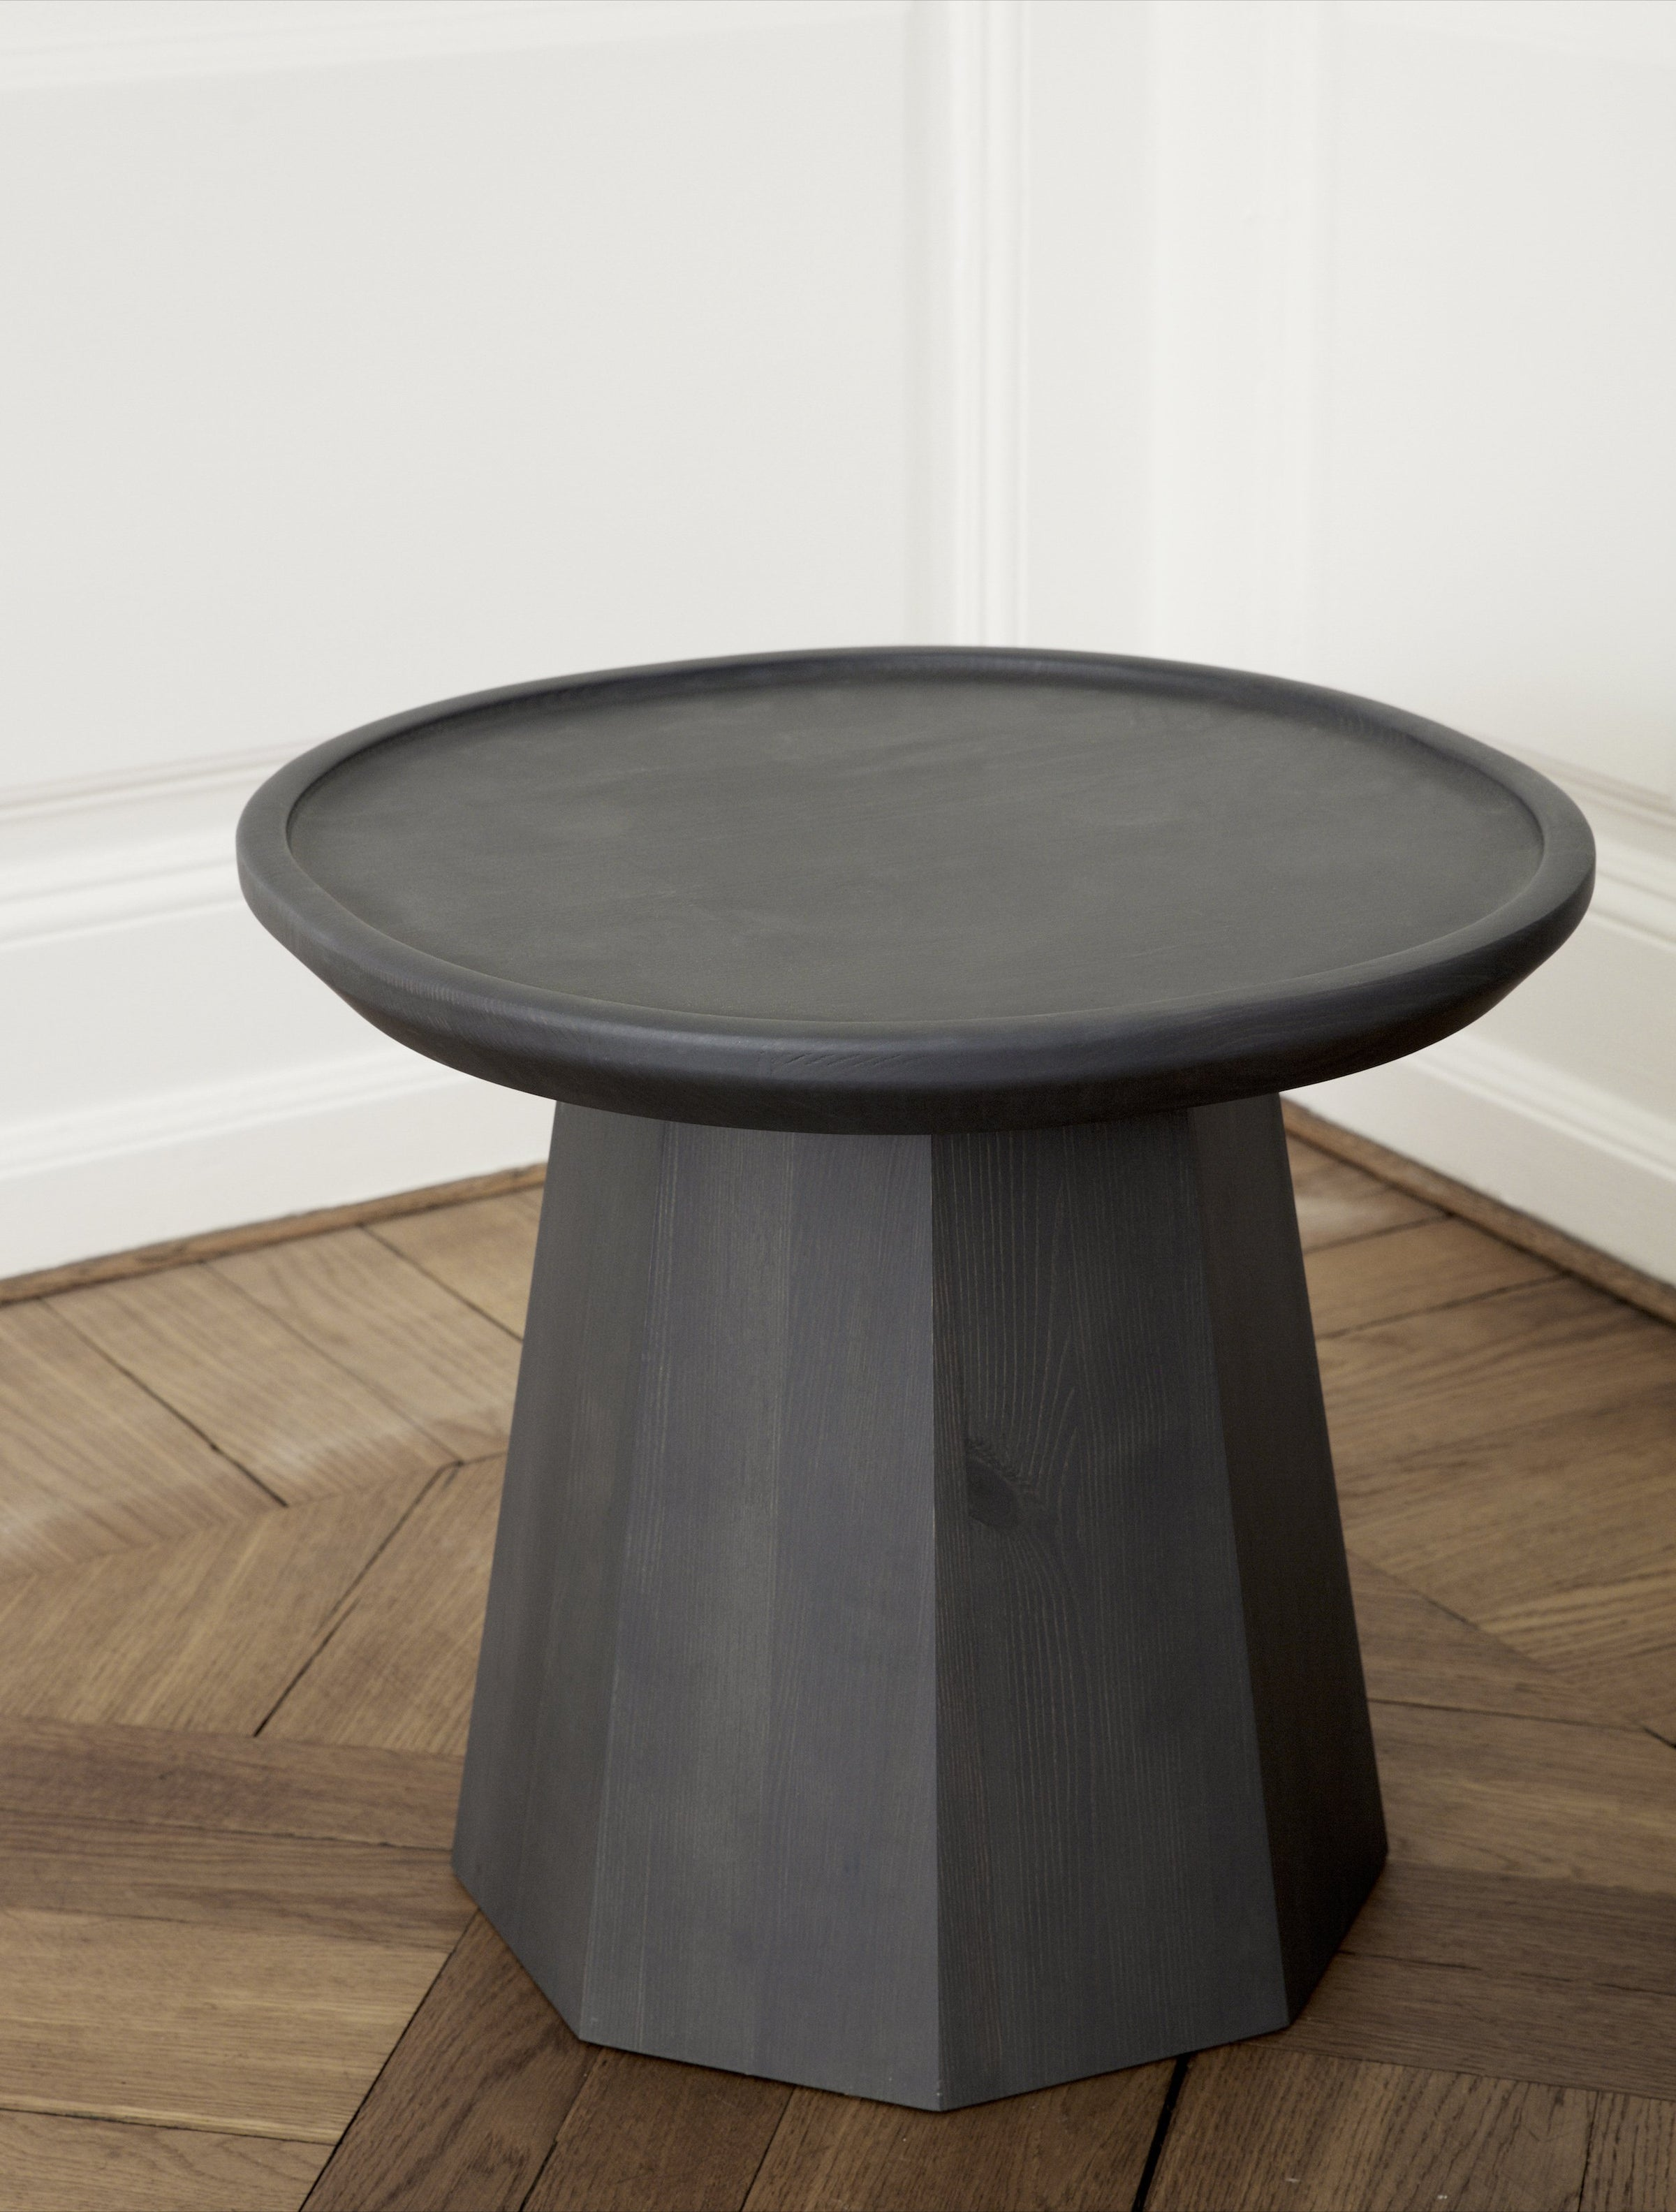 Pine Table-Simon Legald-Normann Copenhagen-light grey-Large-Average-canada-design-store-danish-denmark-furniture-interior